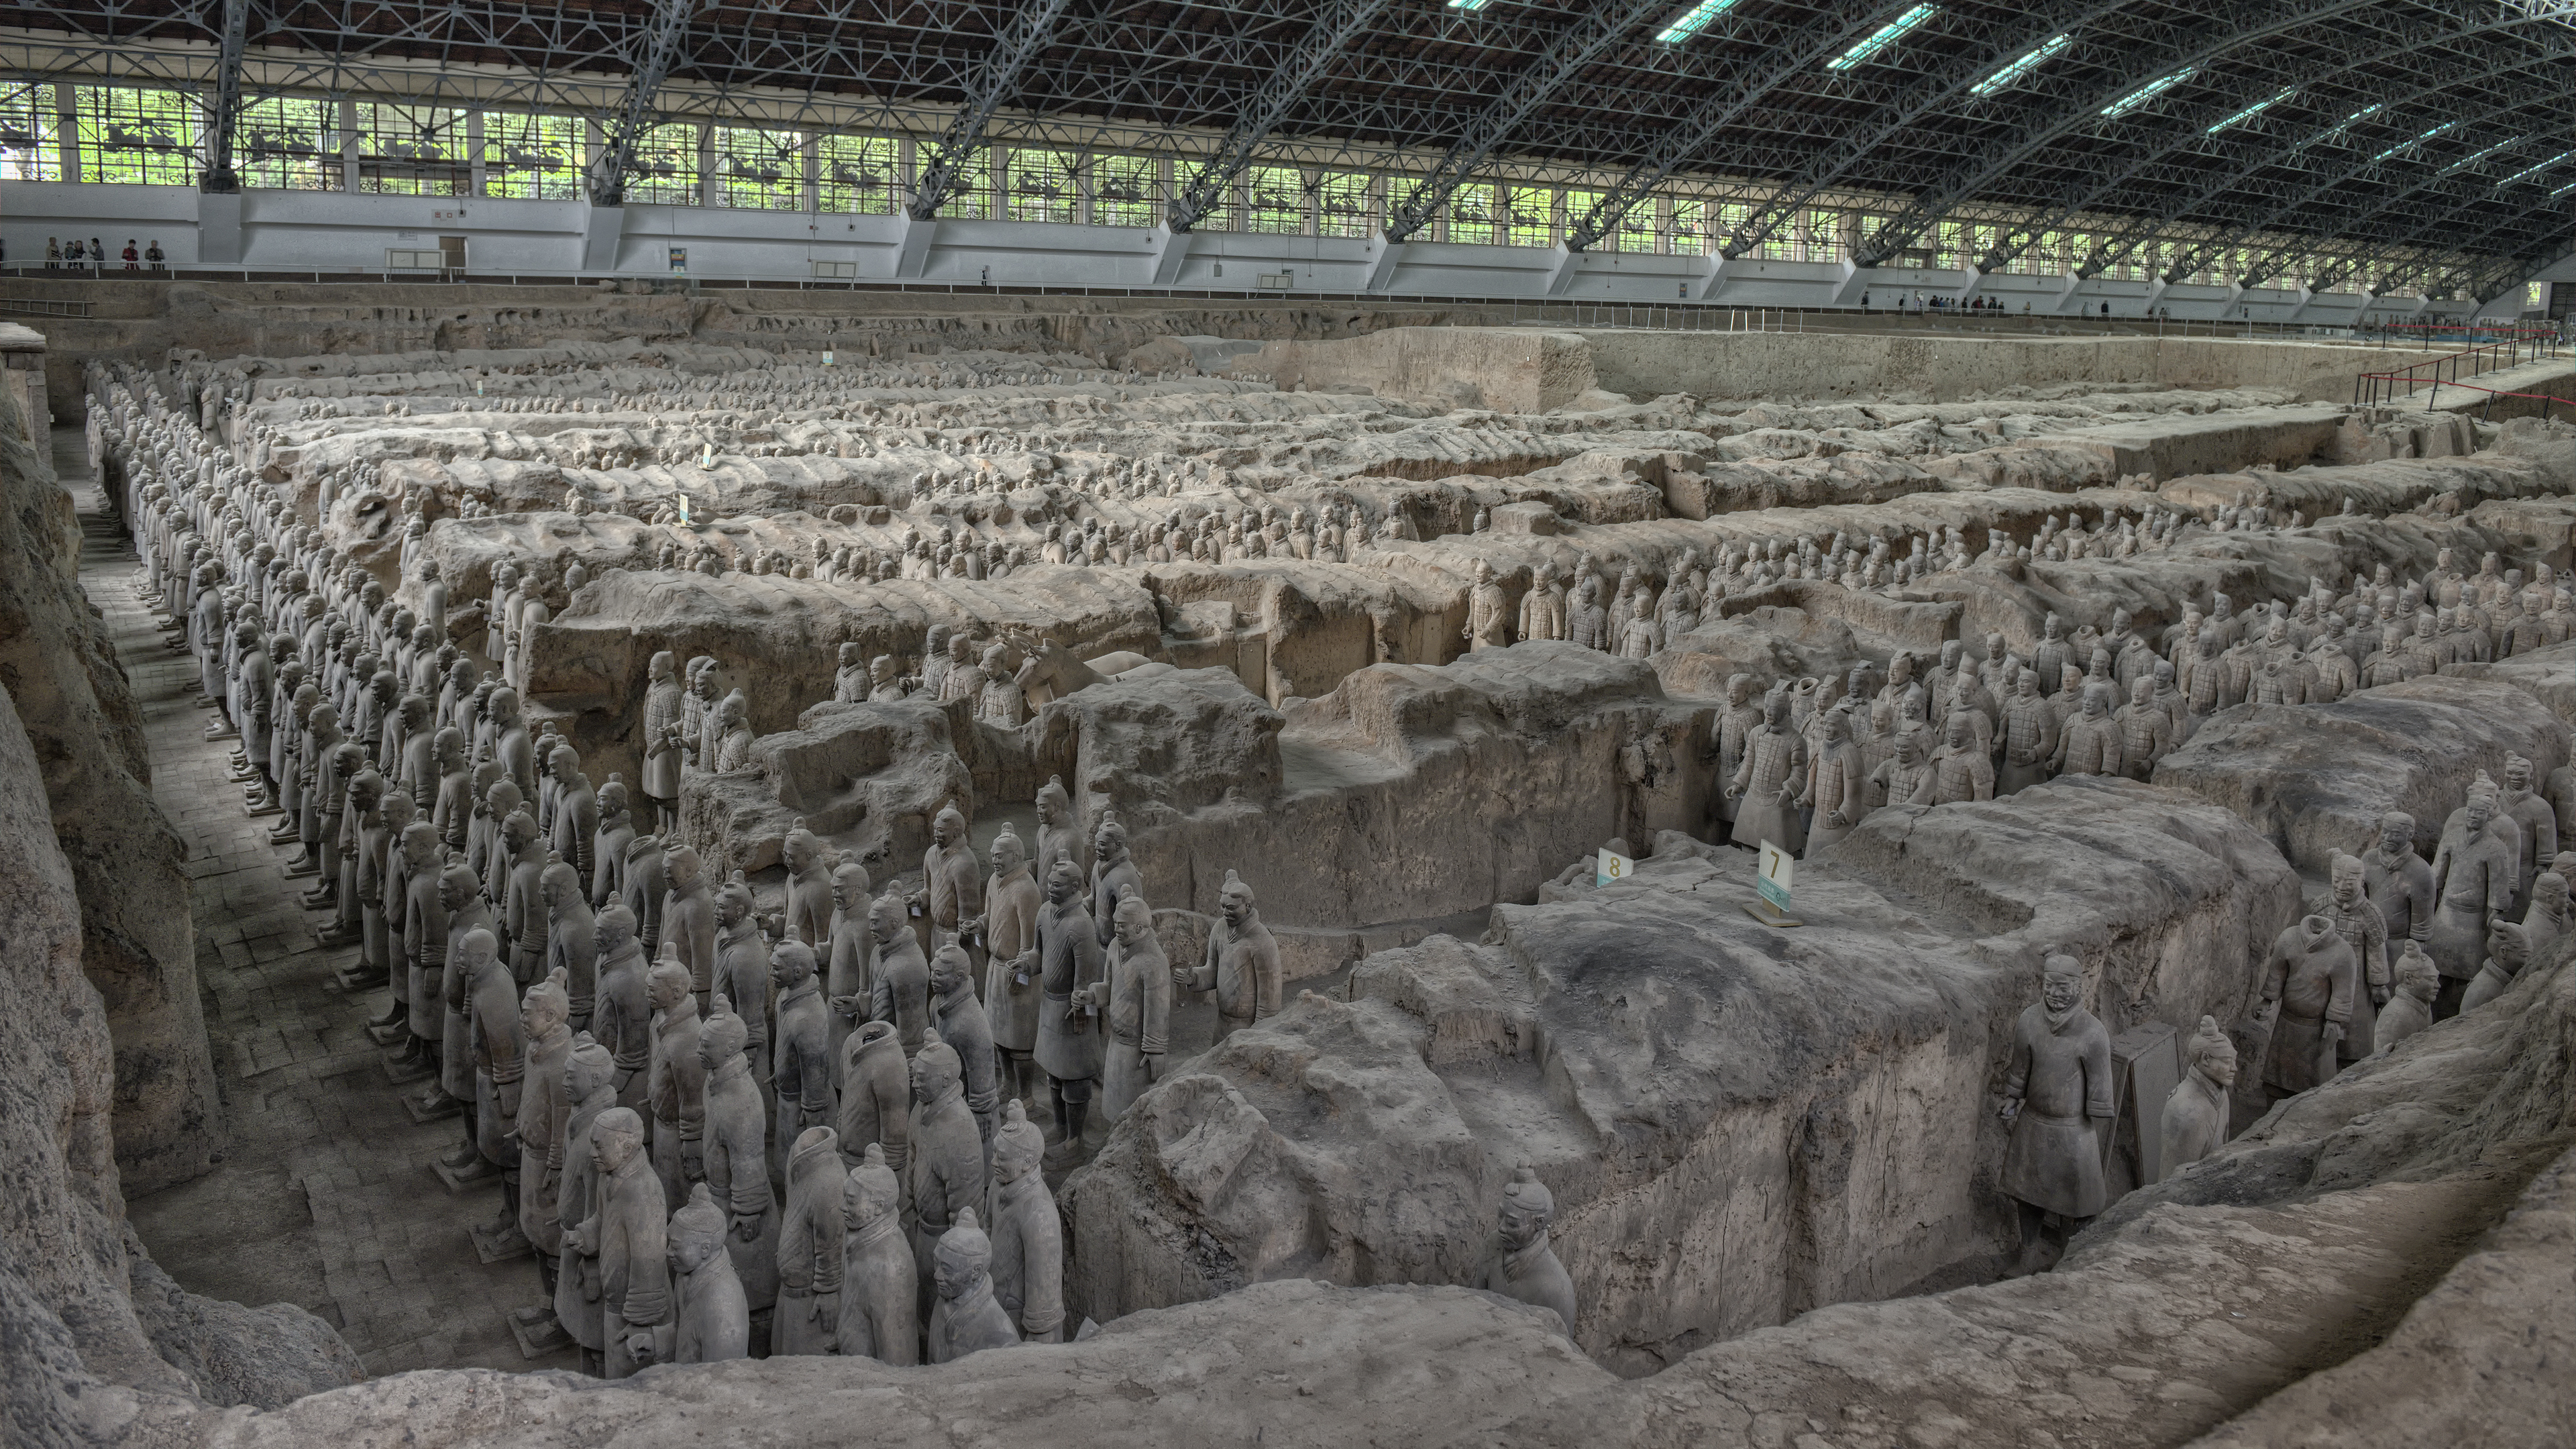 Terra Cotta Warriors in Xian, China